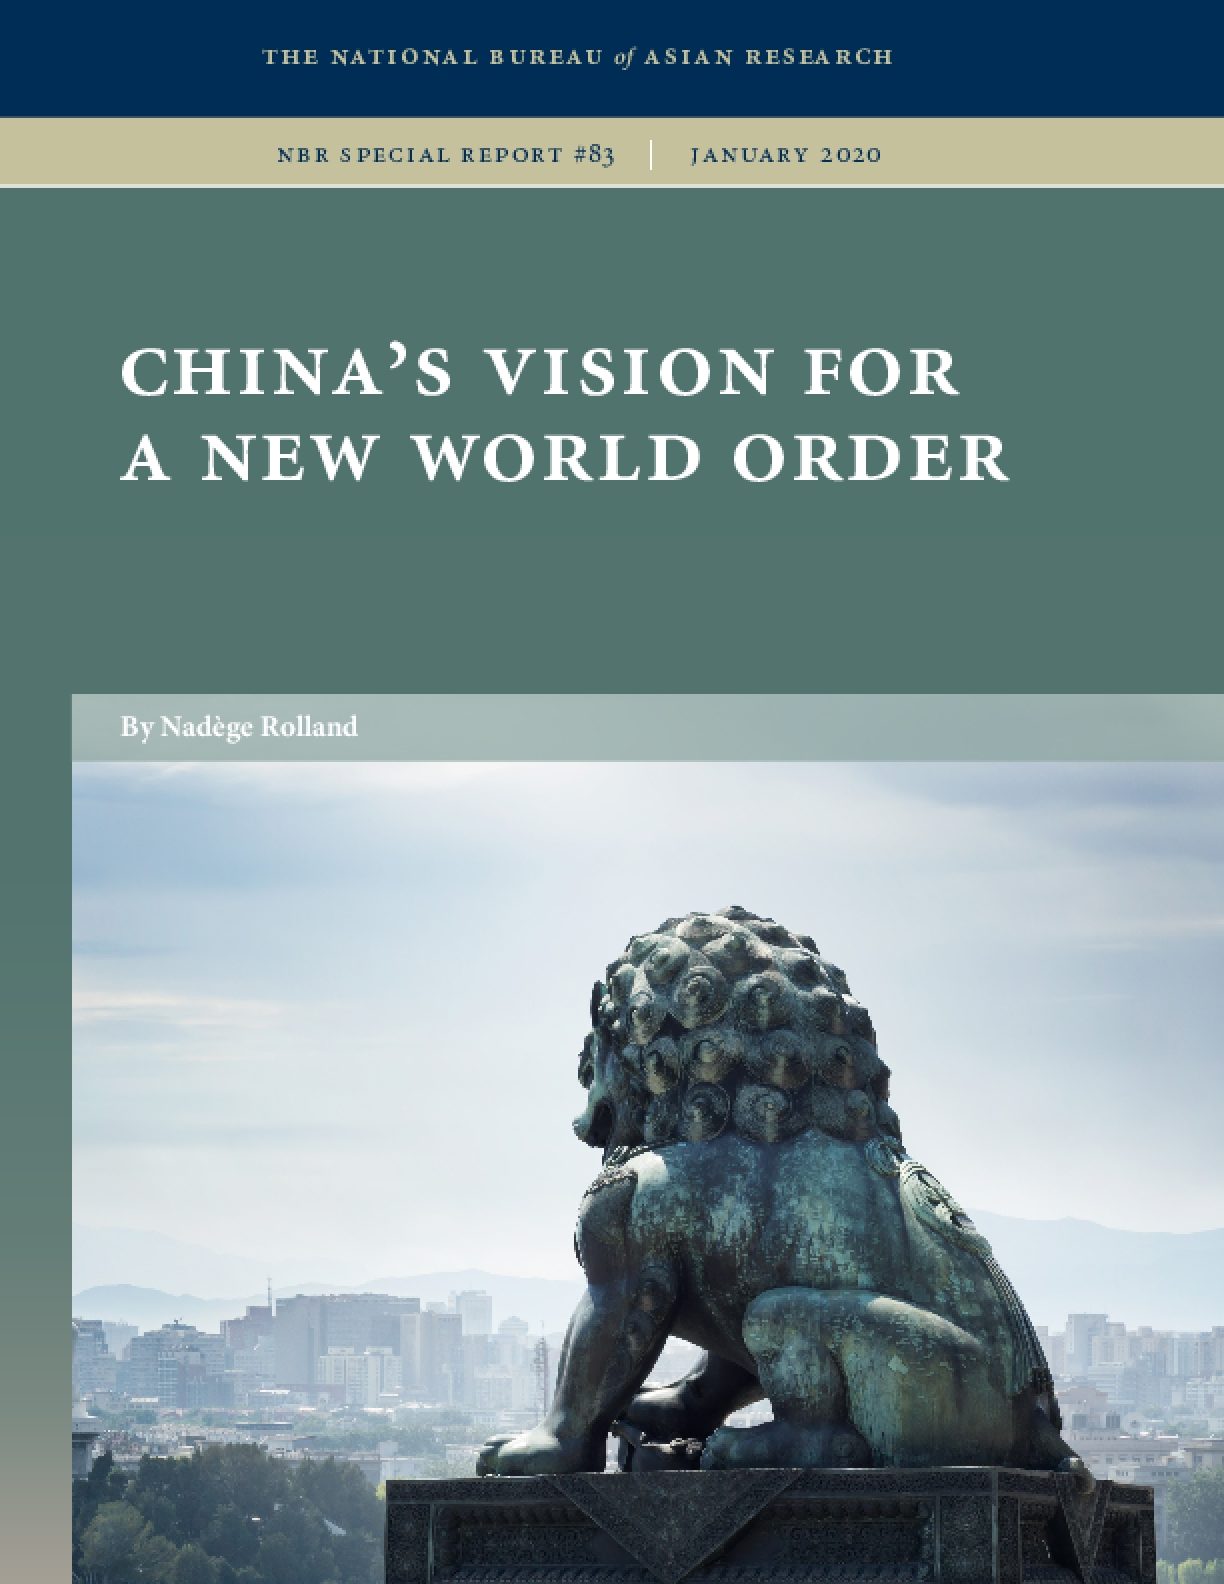 China's Vision for a New World Order